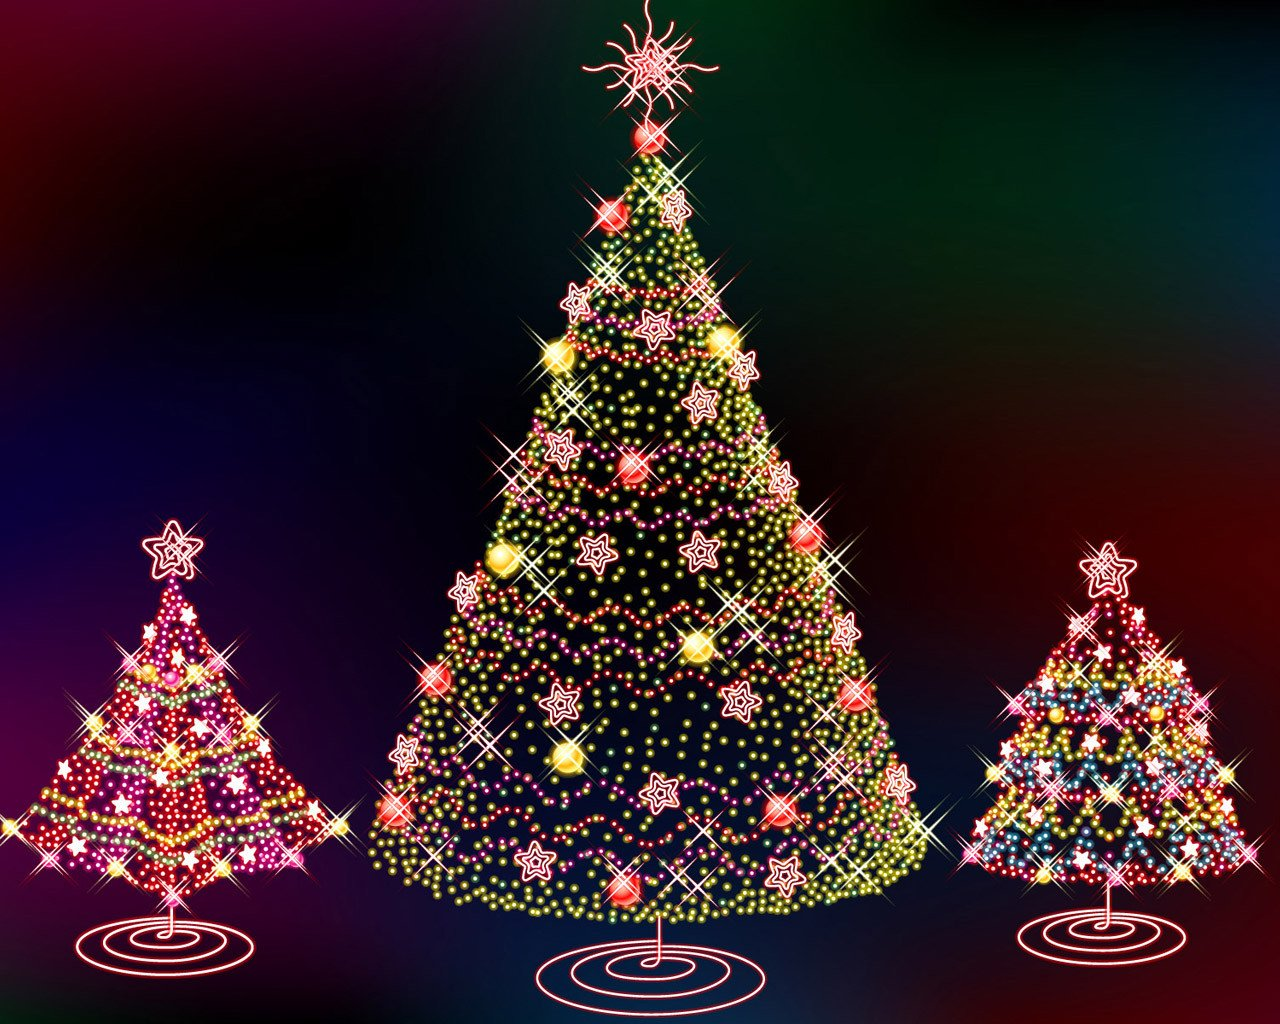 Free Christmas Desktop Wallpaper Christmas Wallpaper 3d Wallpaper